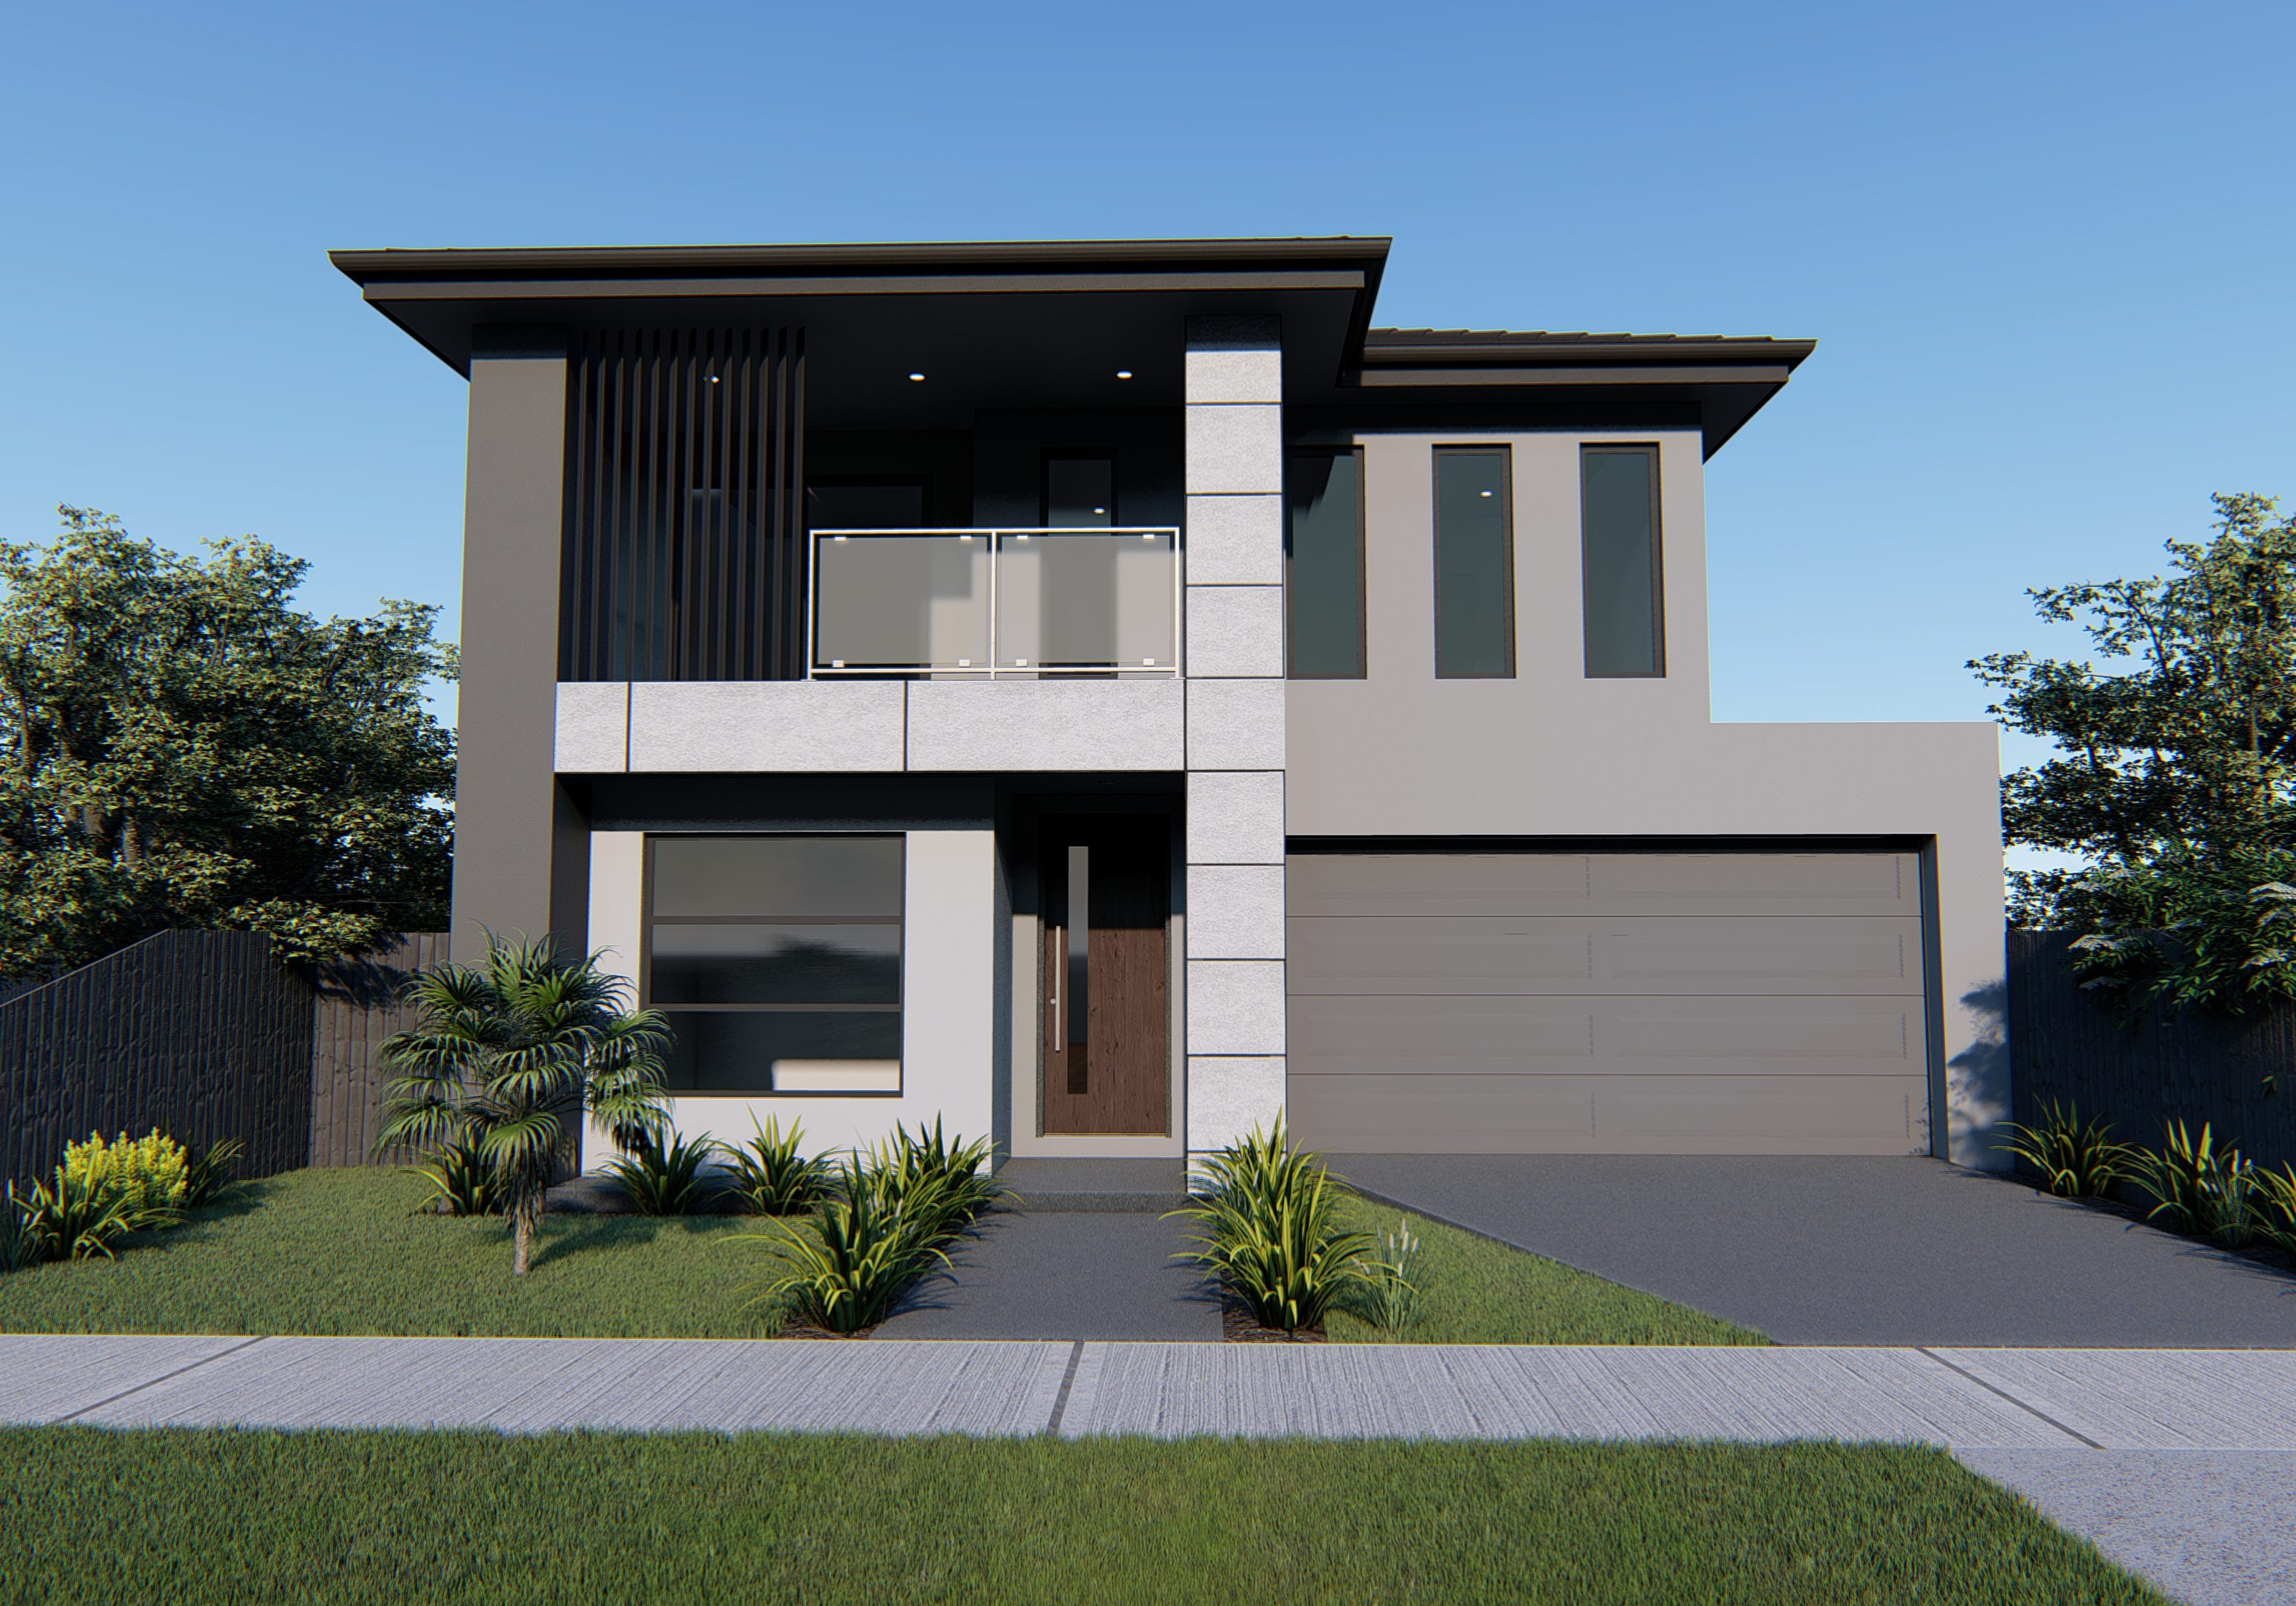 Euroa Kori with Matrix 30SQ 4 Bedroom Home from Hawkeye Projects - Melbourne's Northern Suburbs boutique builder